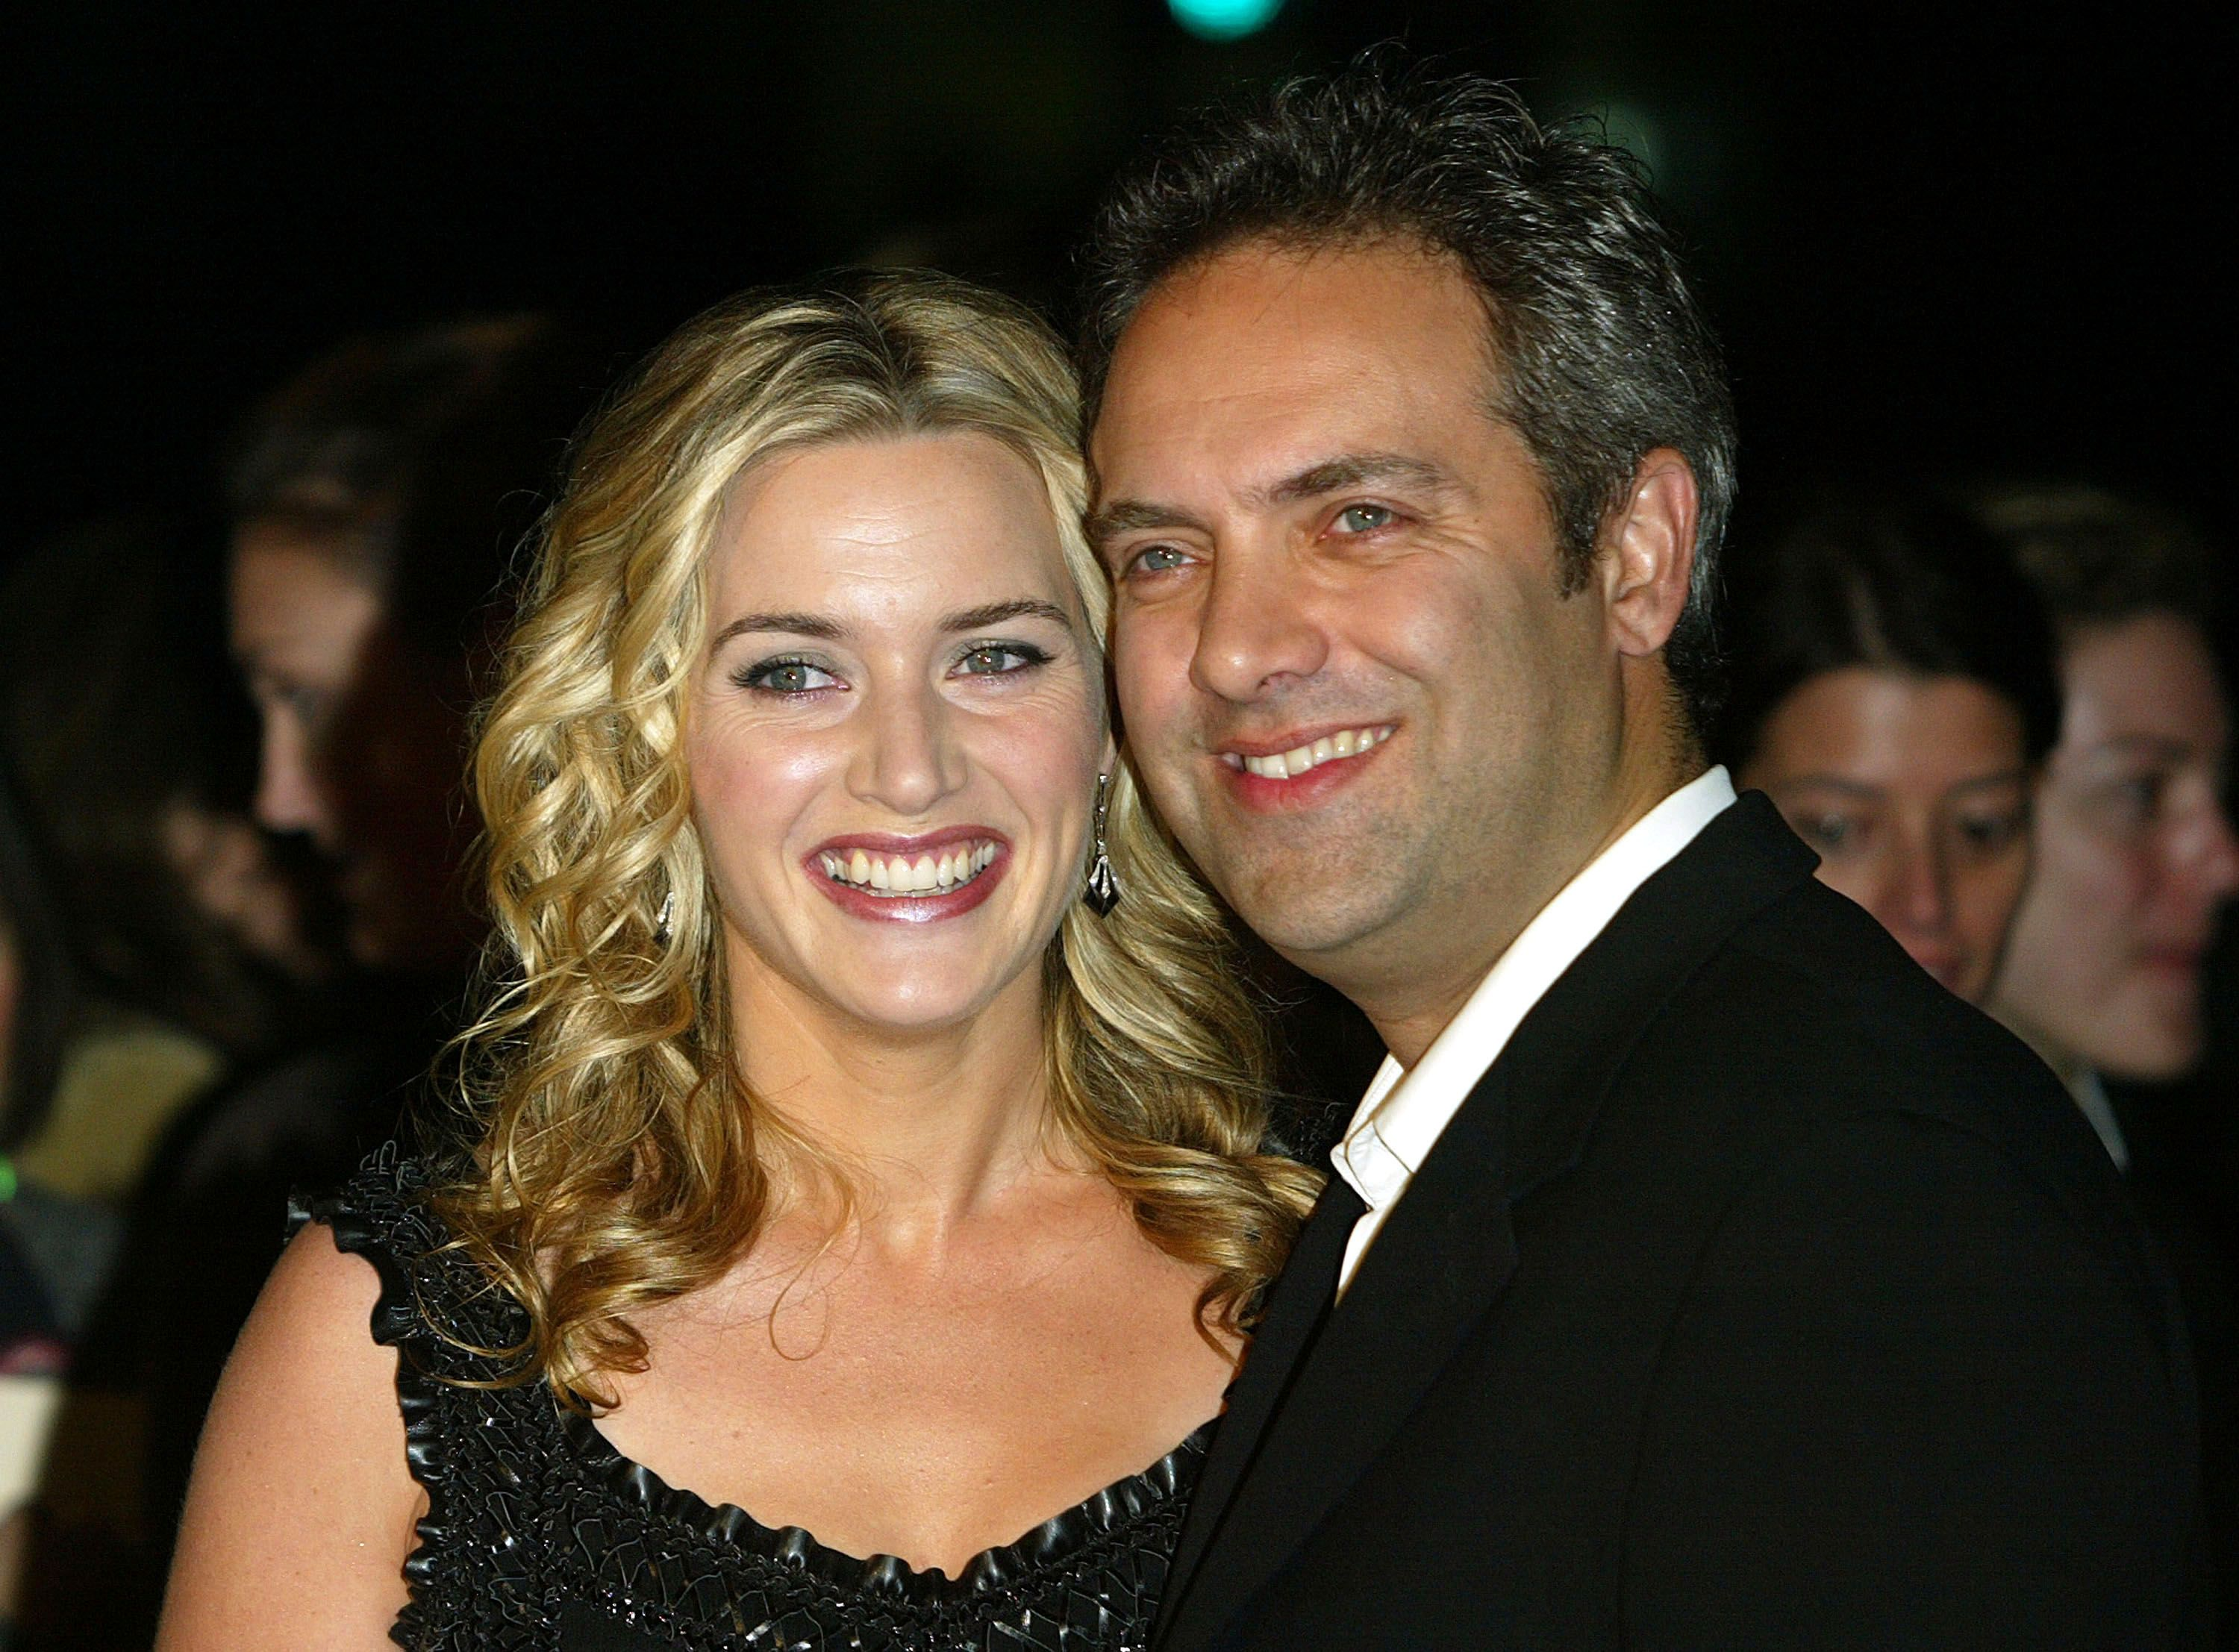 """Kate Winslet and director Sam Mendes at the premiere of """"Finding Neverland"""" in 2004 in Beverly Hills   Source: Getty Images"""